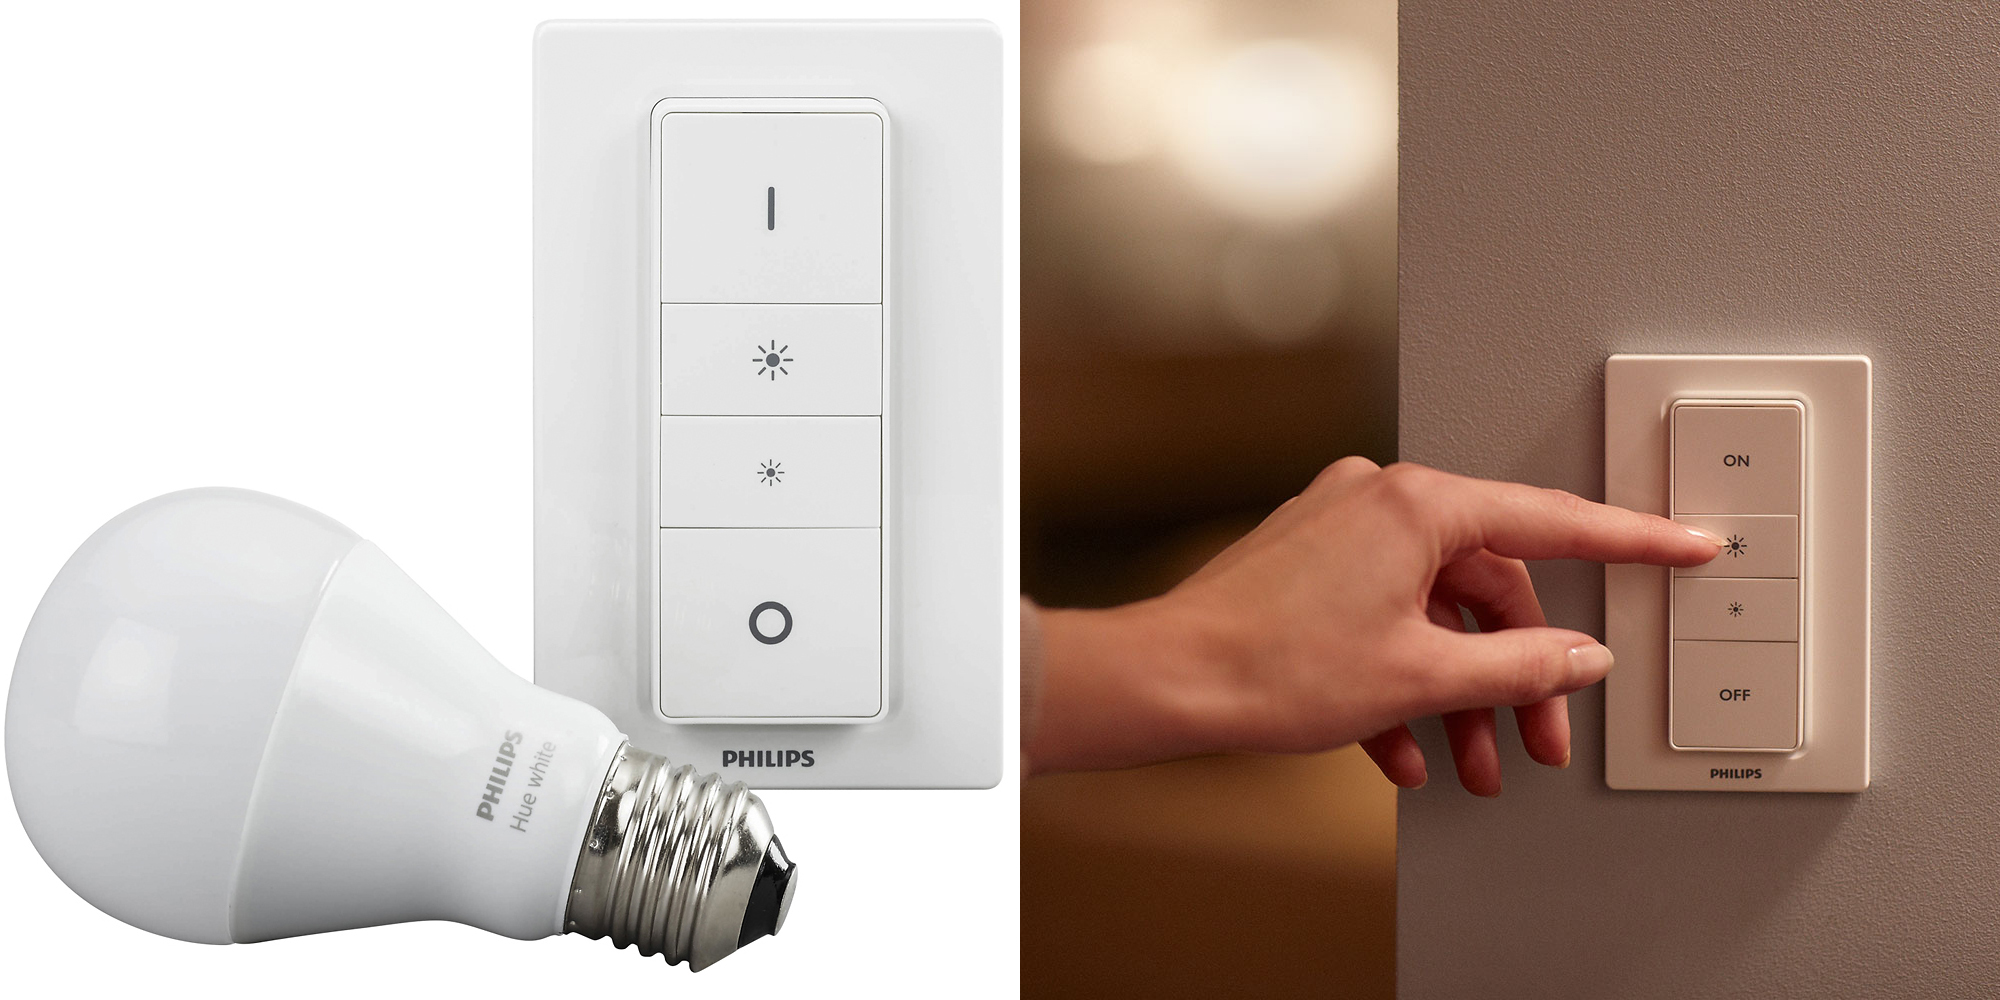 Philips Dimmer Philips Hue Wireless Dimmer Controls Your Lights Comes Bundled